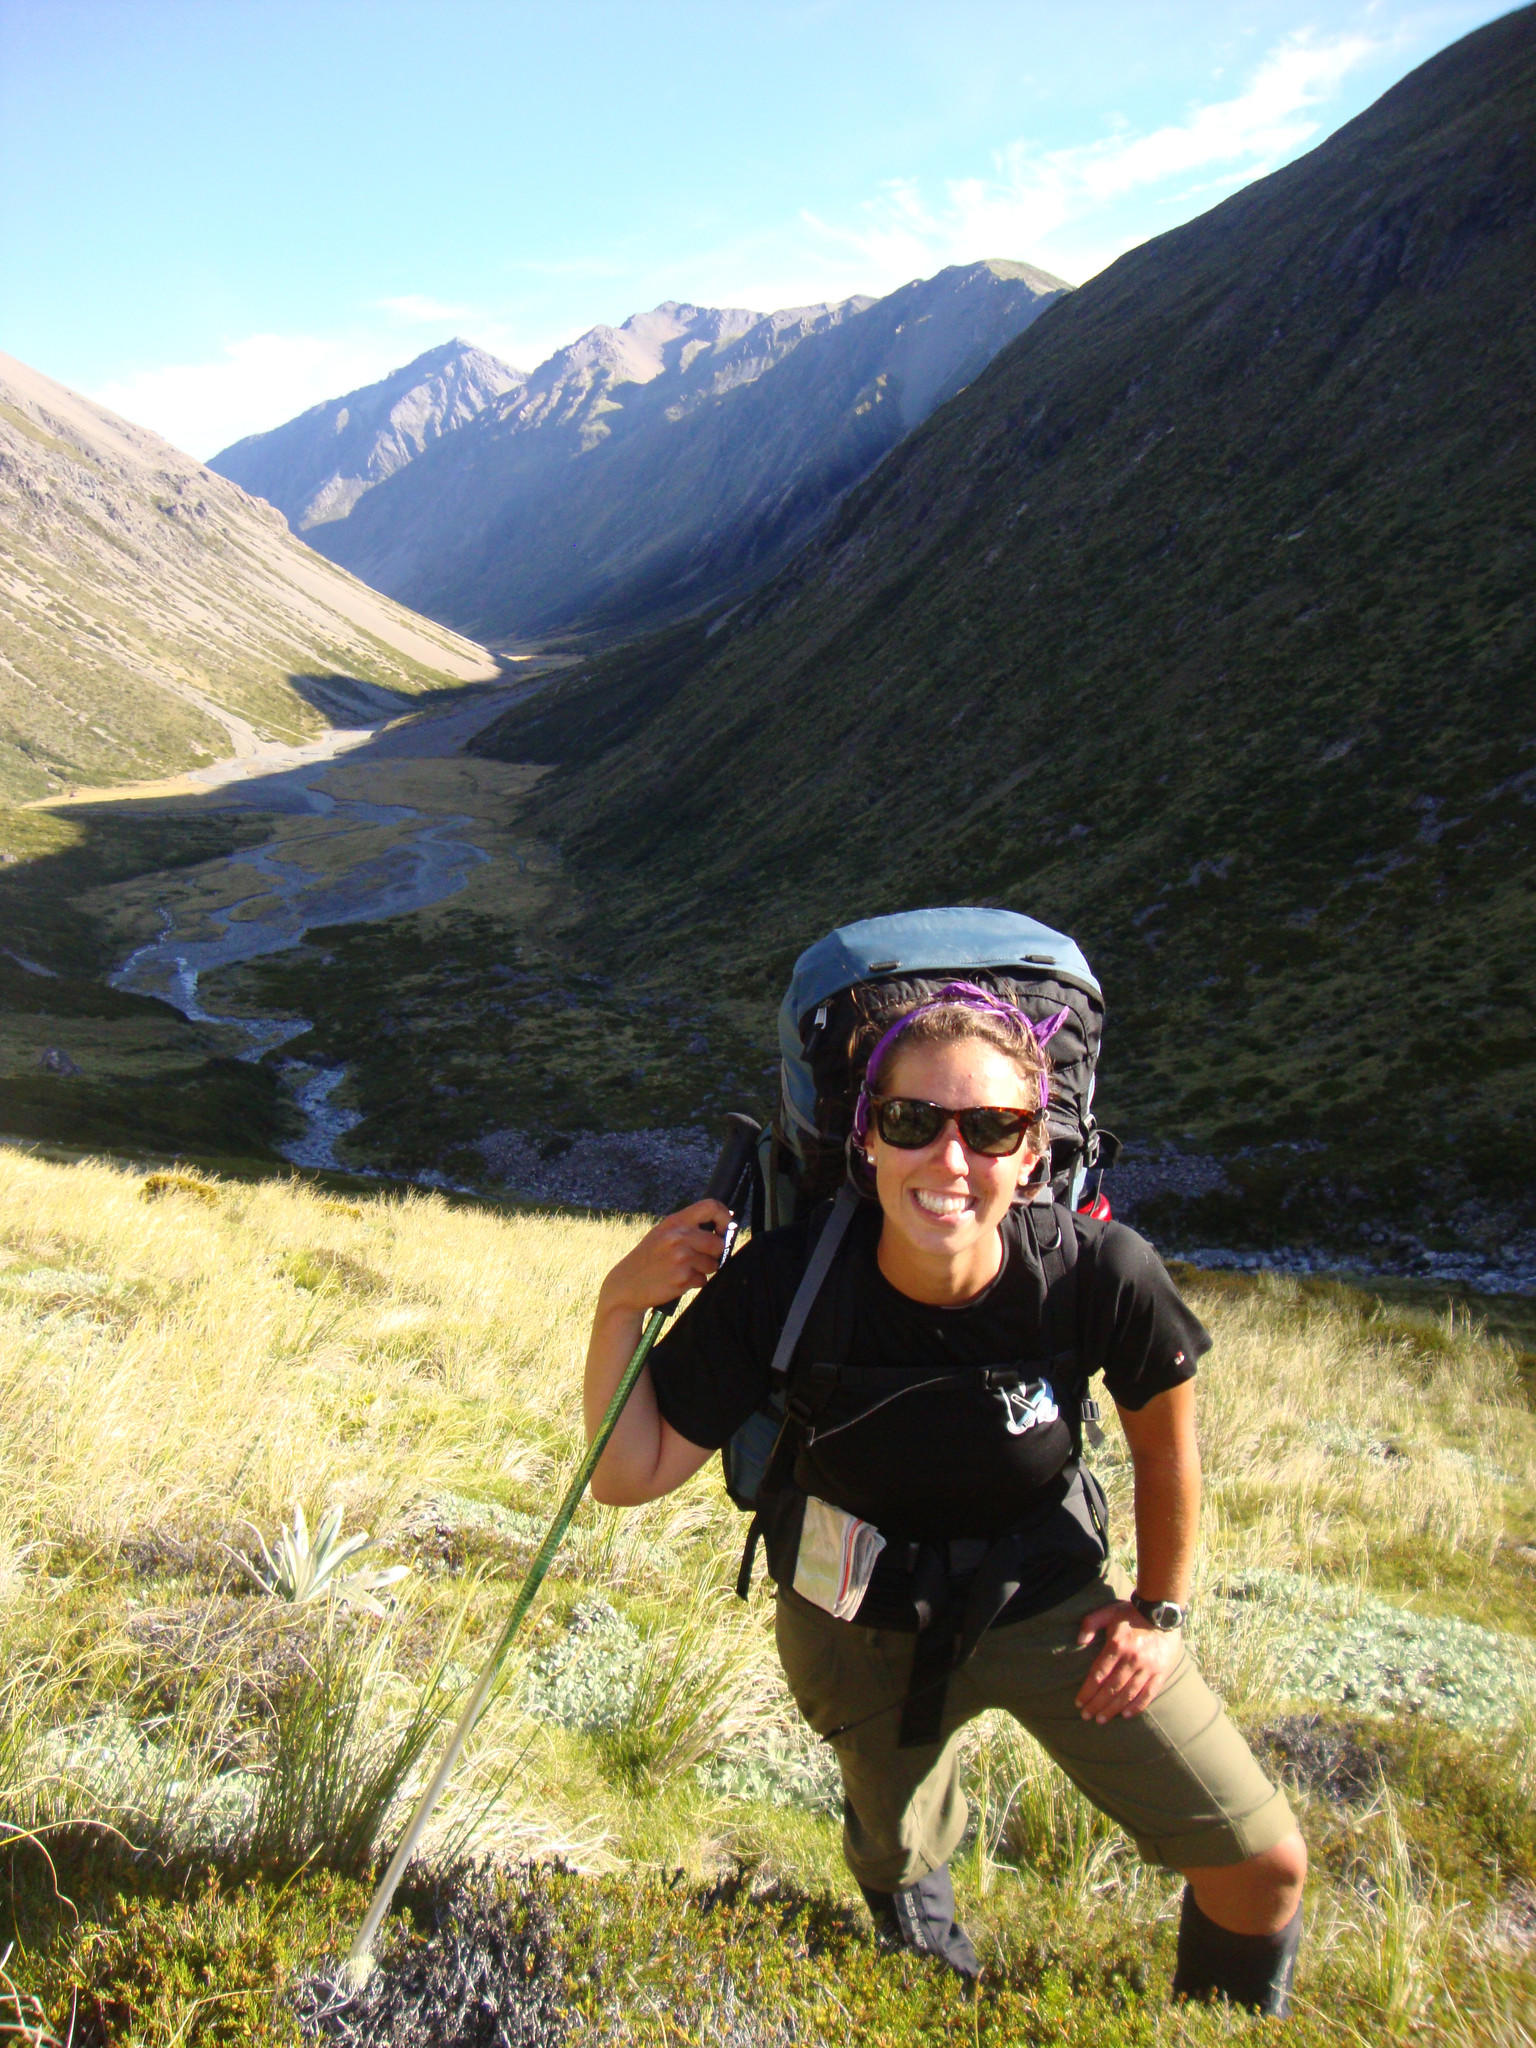 Wendy Cirko poses for a photo during her National Outdoor Leadership Schools Wilderness Expedition to New Zealands Smith Island.